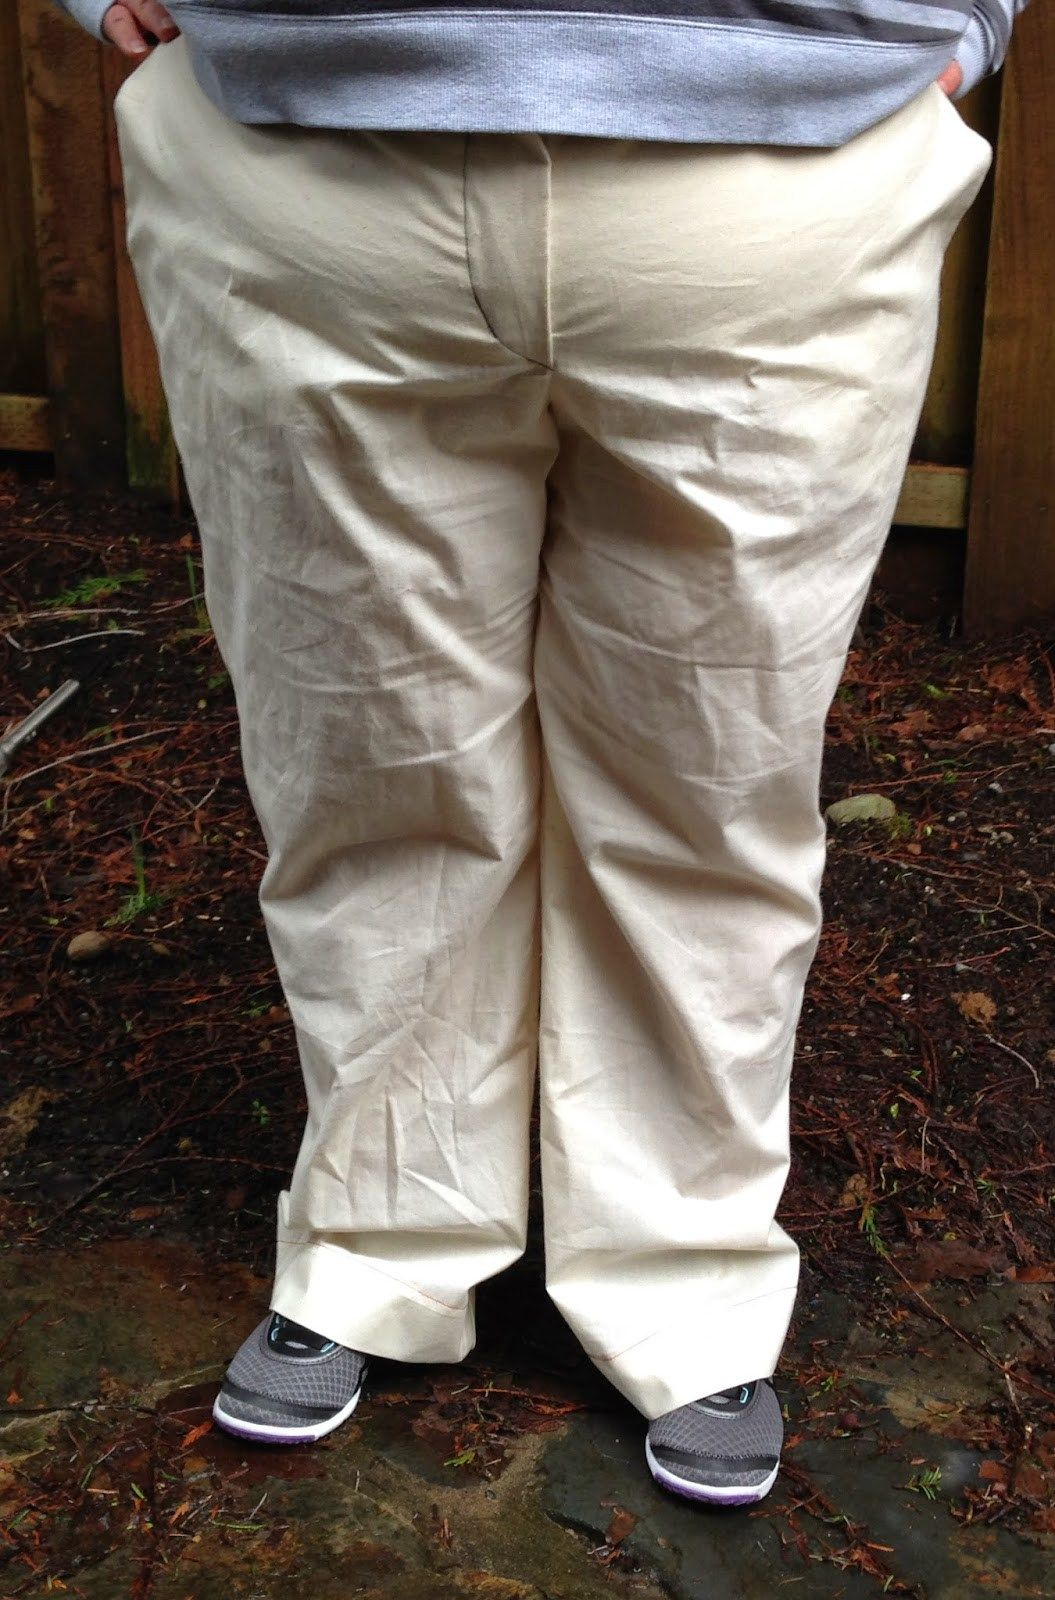 Sewing pattern adjustment for full belly abdomen for better fitting pants and…